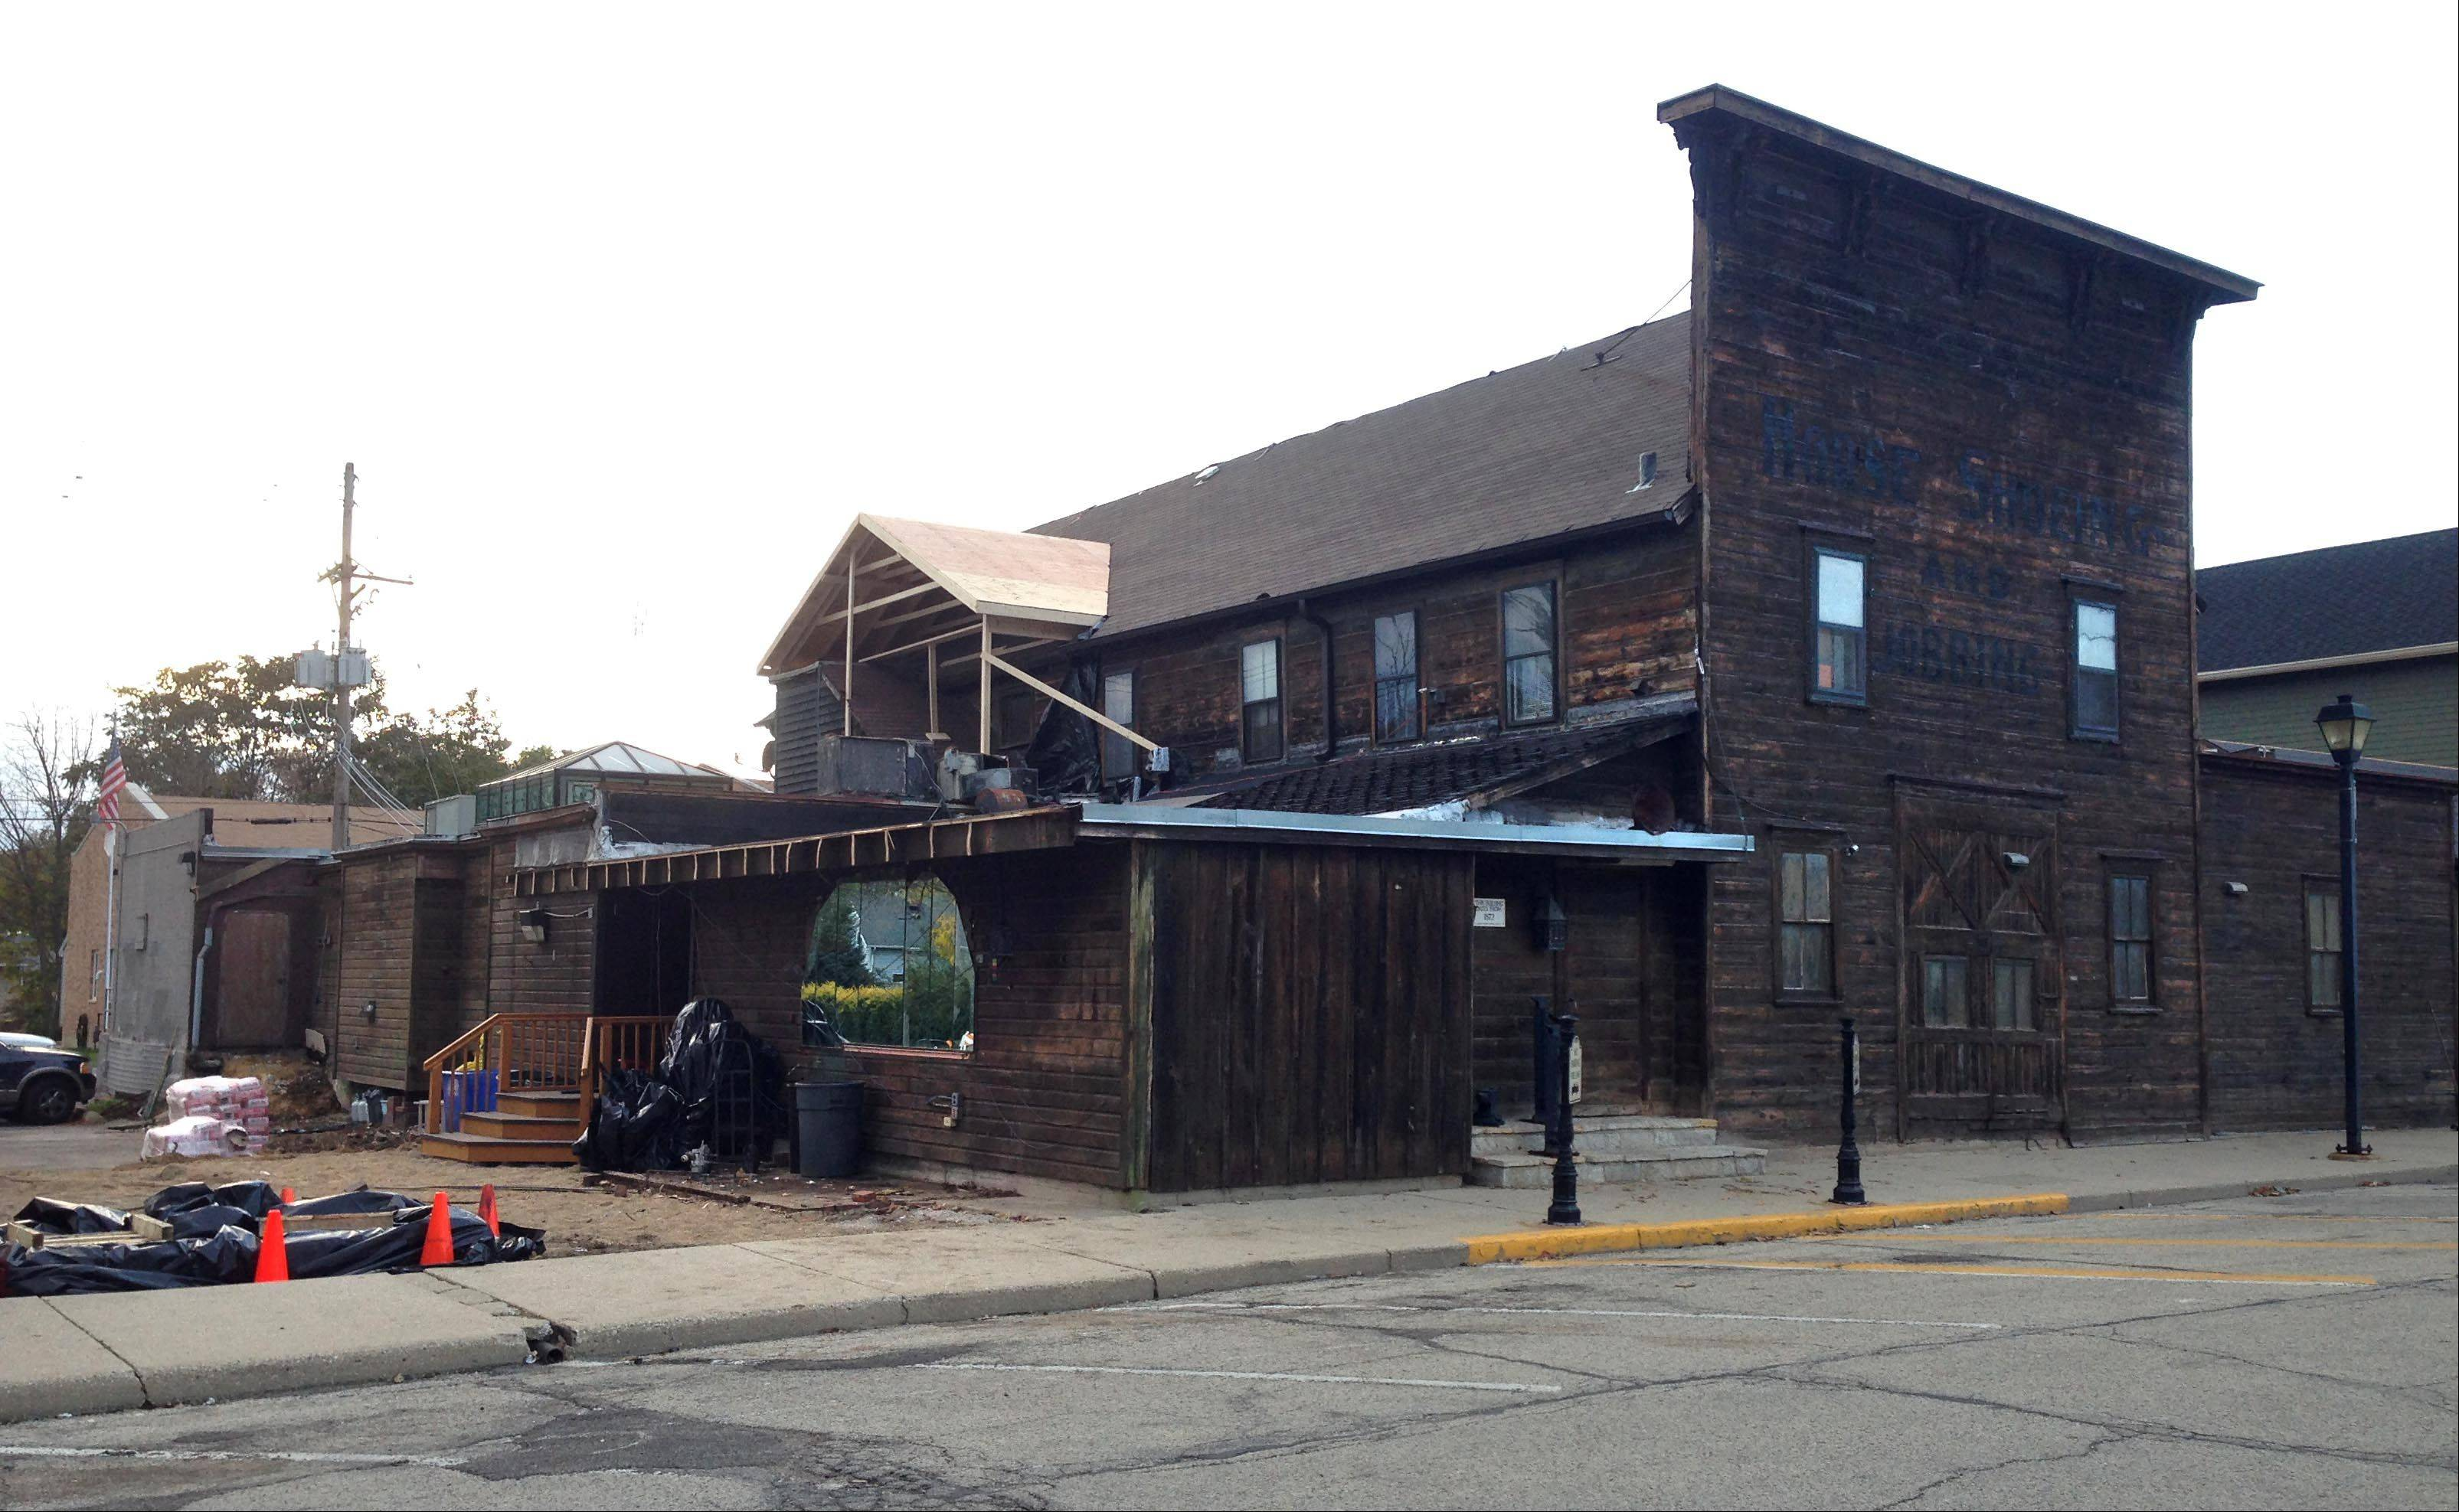 The Anvil Club in East Dundee officially belongs to Tom Roeser, president and CEO of Otto Engineering in Carpentersville. Roeser closed on the sale of the club this week, and an extensive renovation is already underway. The club is open during the renovation.